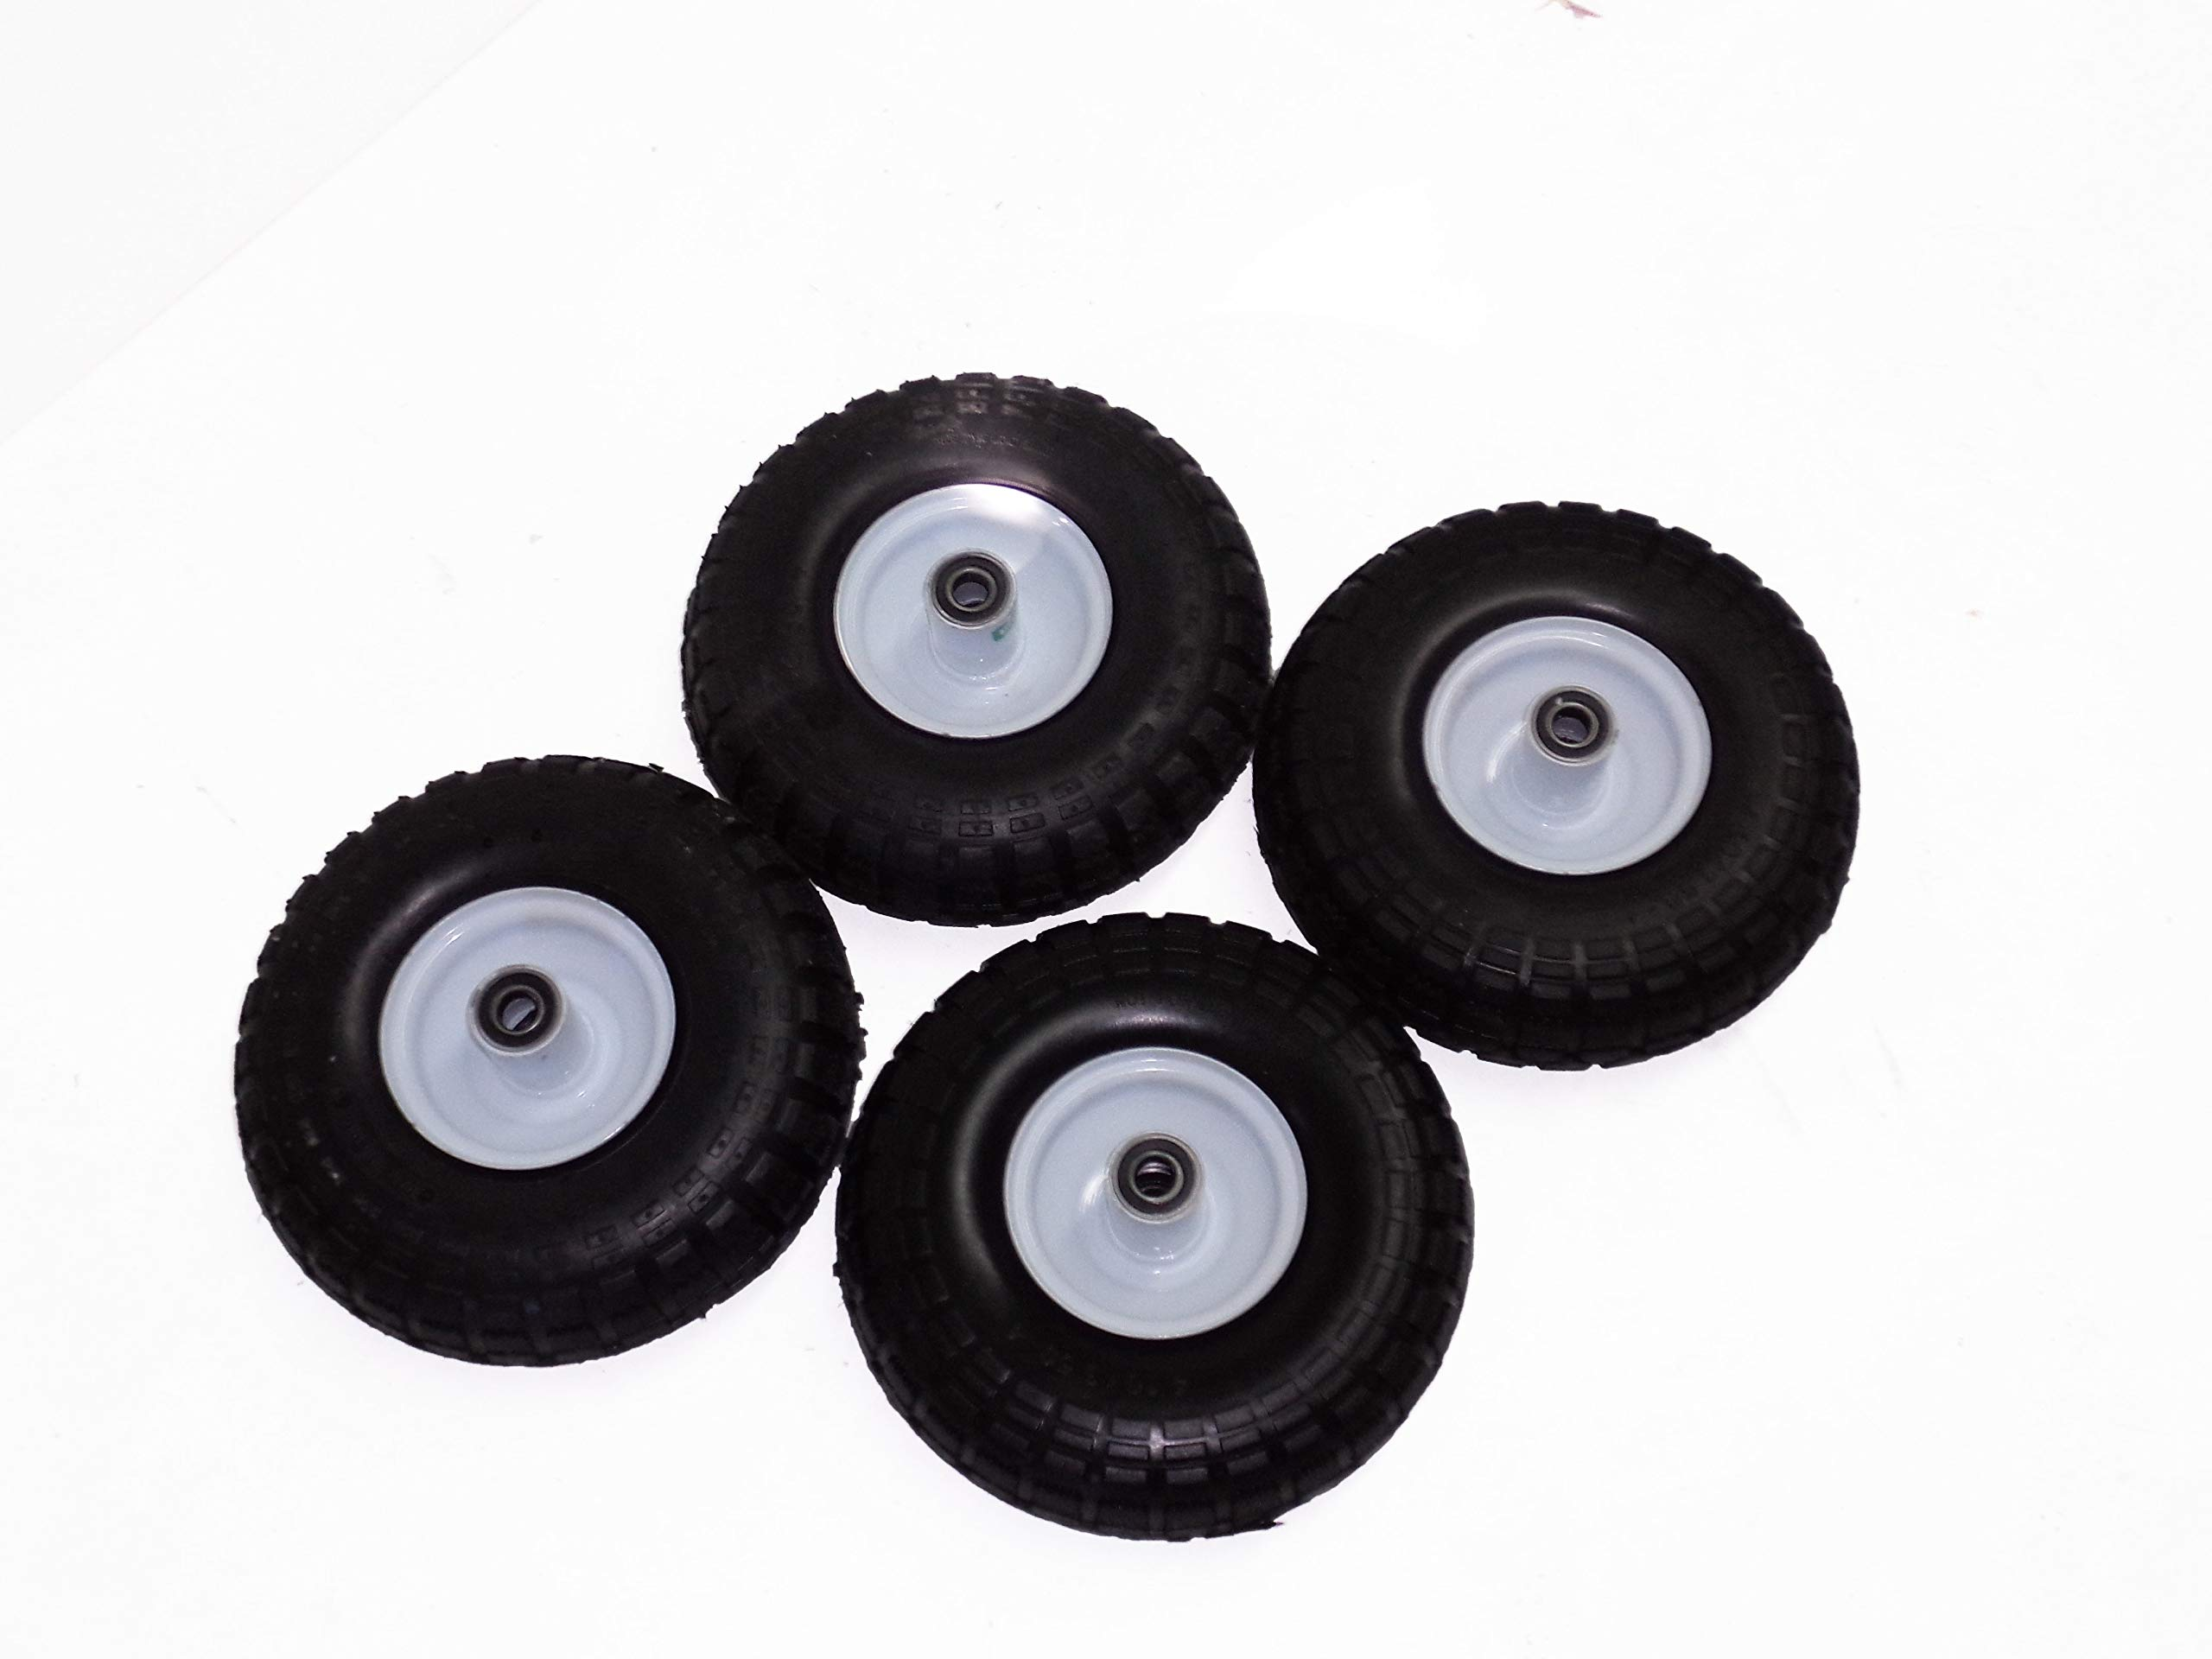 Millside Industries Set of 4 4.10/3.50-4 Pneumatic (Air-Filled) Wagon / Cart All Purpose Utility Tires on Wheels 2.25'' Offset White Hub, 5/8'' Bore Ball Bearings